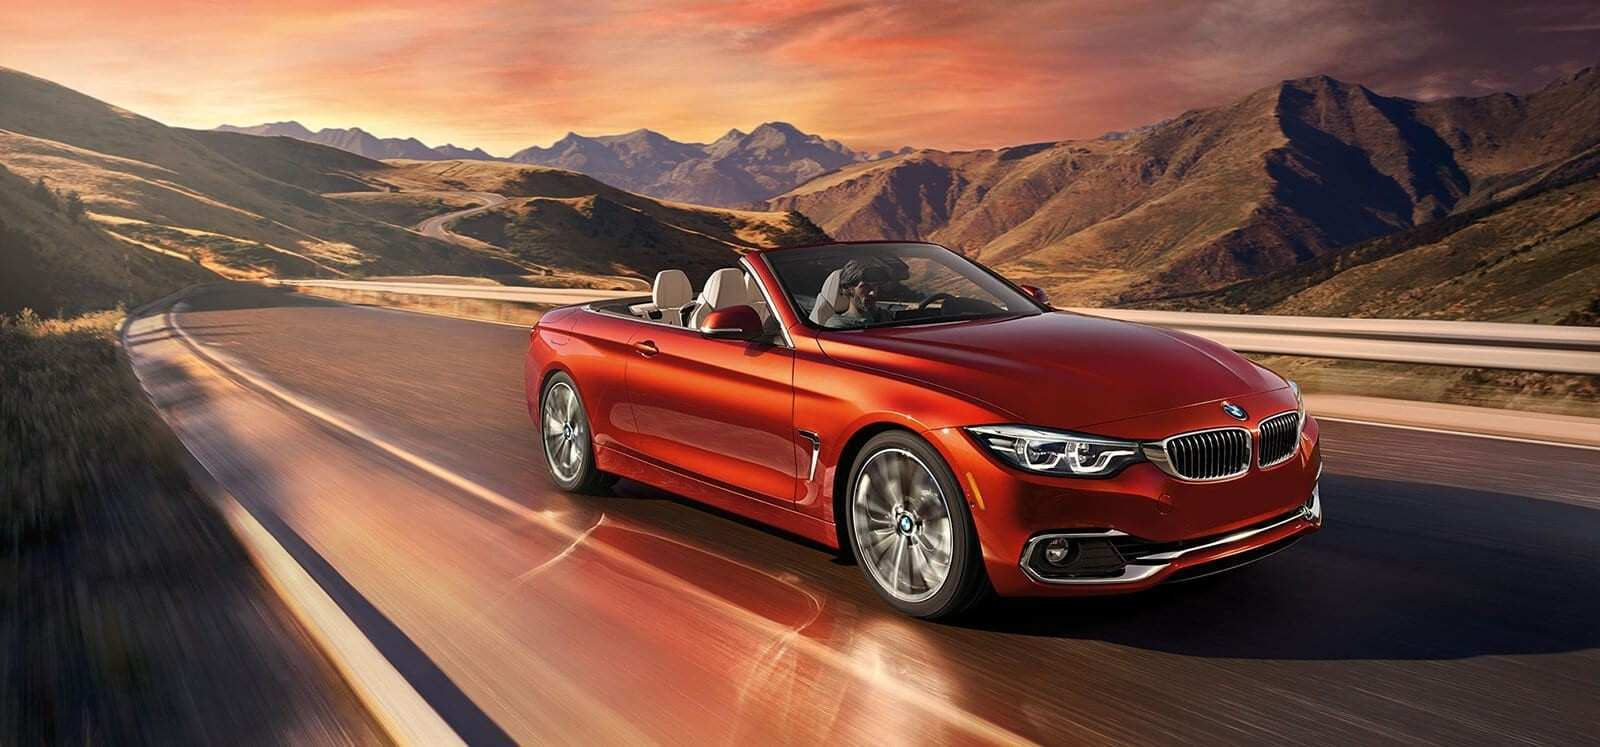 65 Gallery of Bmw Hardtop Convertible 2019 Exterior History with Bmw Hardtop Convertible 2019 Exterior